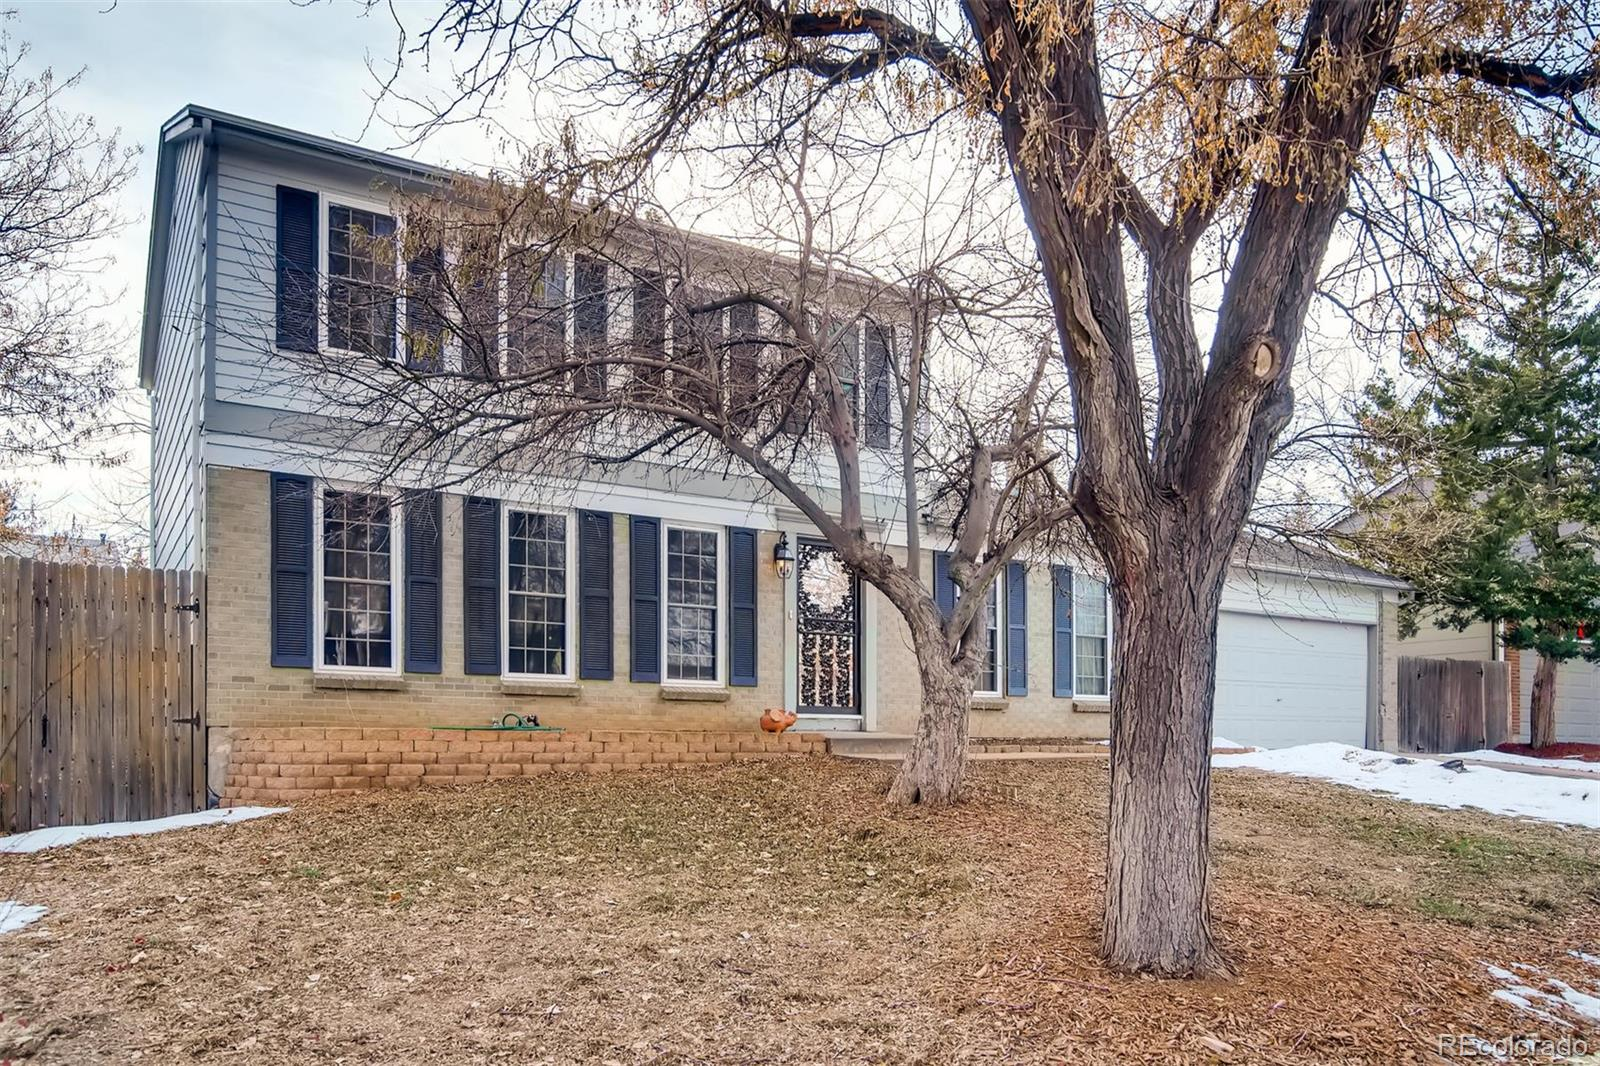 Short Sale! This property last sold in 2018 for 362k. This short sale is being offered today at 345k. Property is in overall good shape, just needs carpet and paint. With minor repairs comps are 400k. Great kitchen, large backyard.